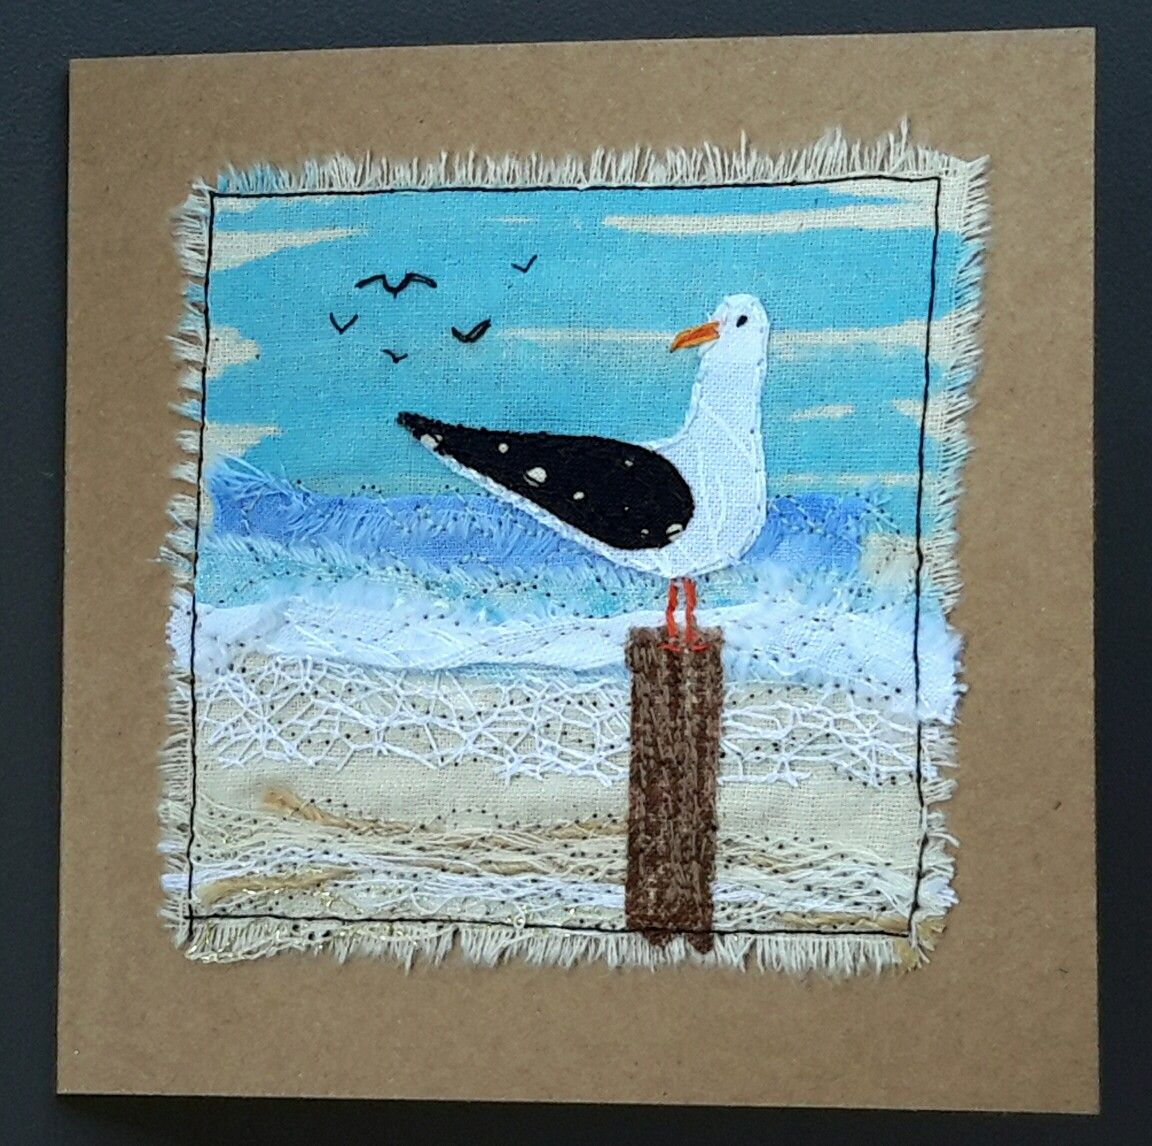 Pin by Janice Pagel on quilts | Pinterest | Sewing cards, Free ...